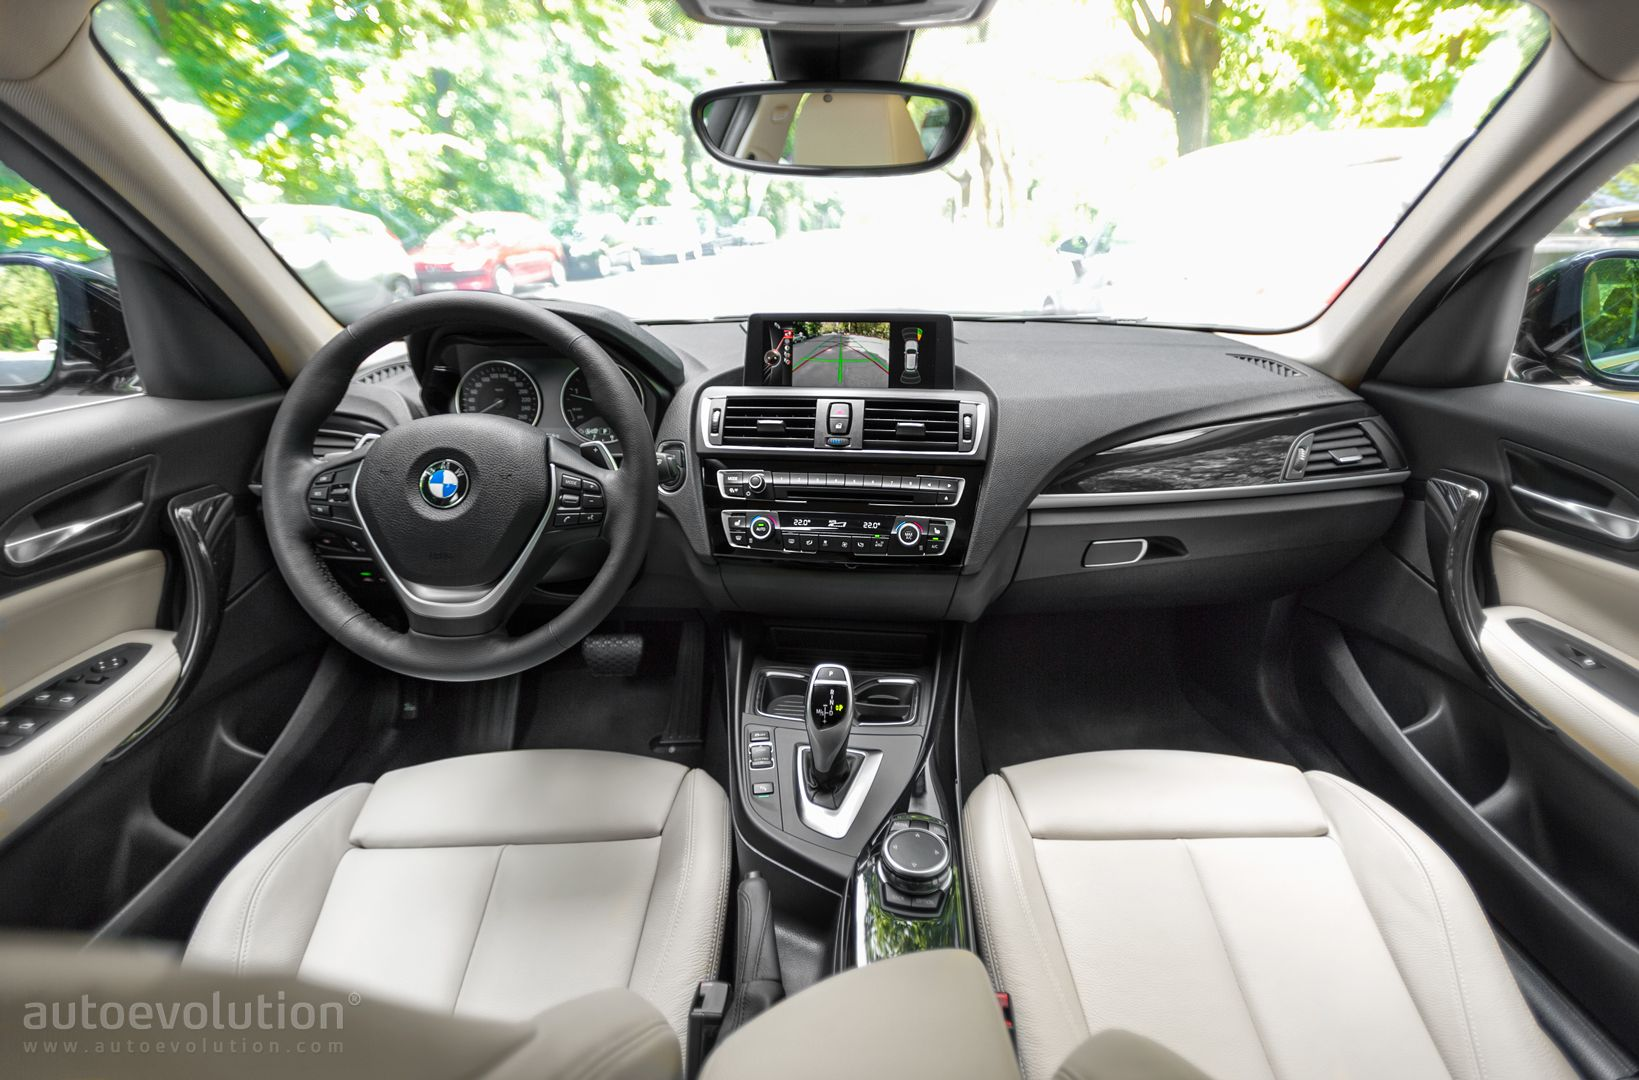 2015 bmw 1 series facelift review autoevolution for Interieur 2015